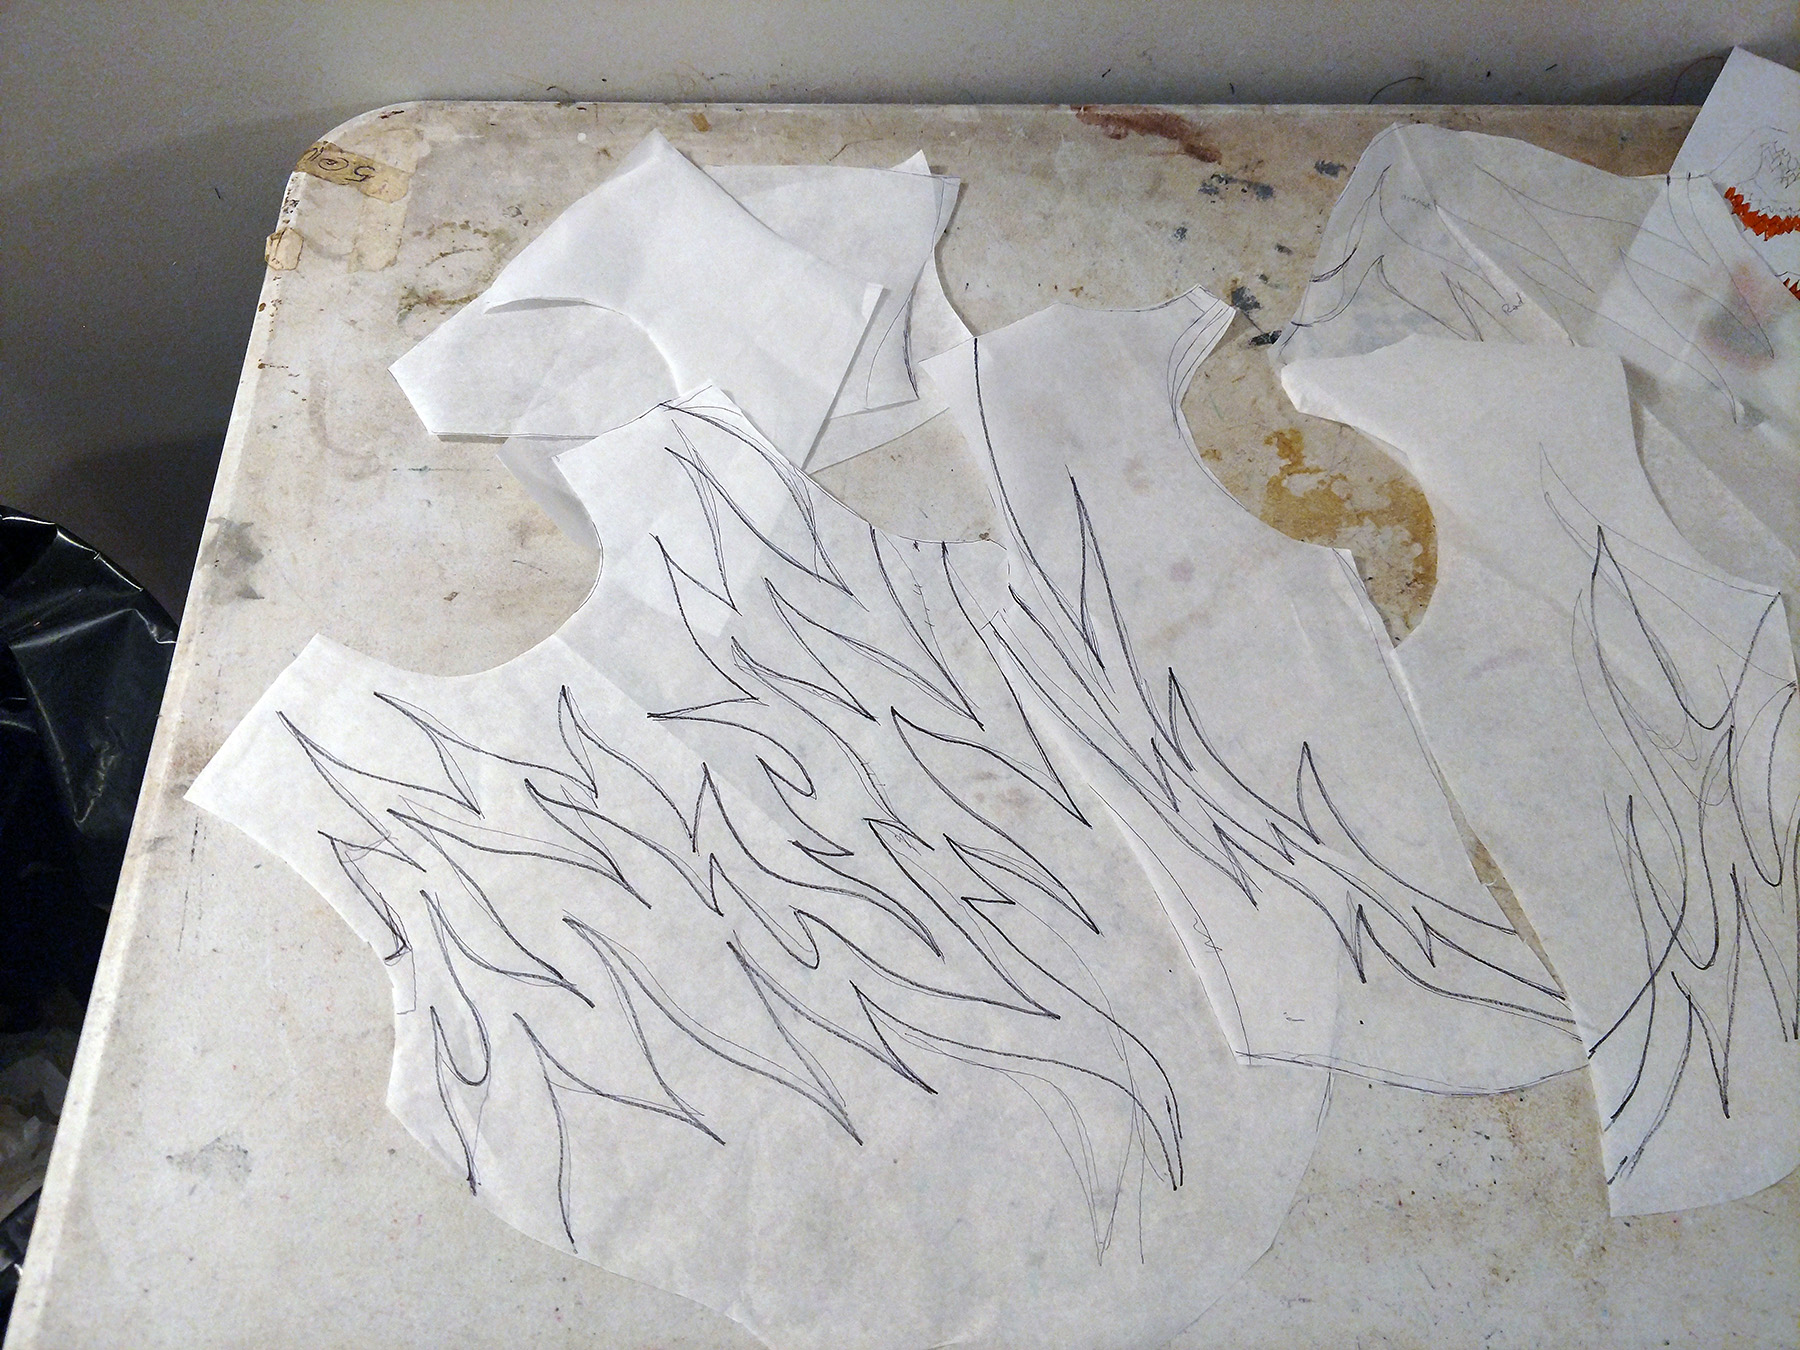 Several white paper pattern pieces on a work surface, all marked with a flames design.